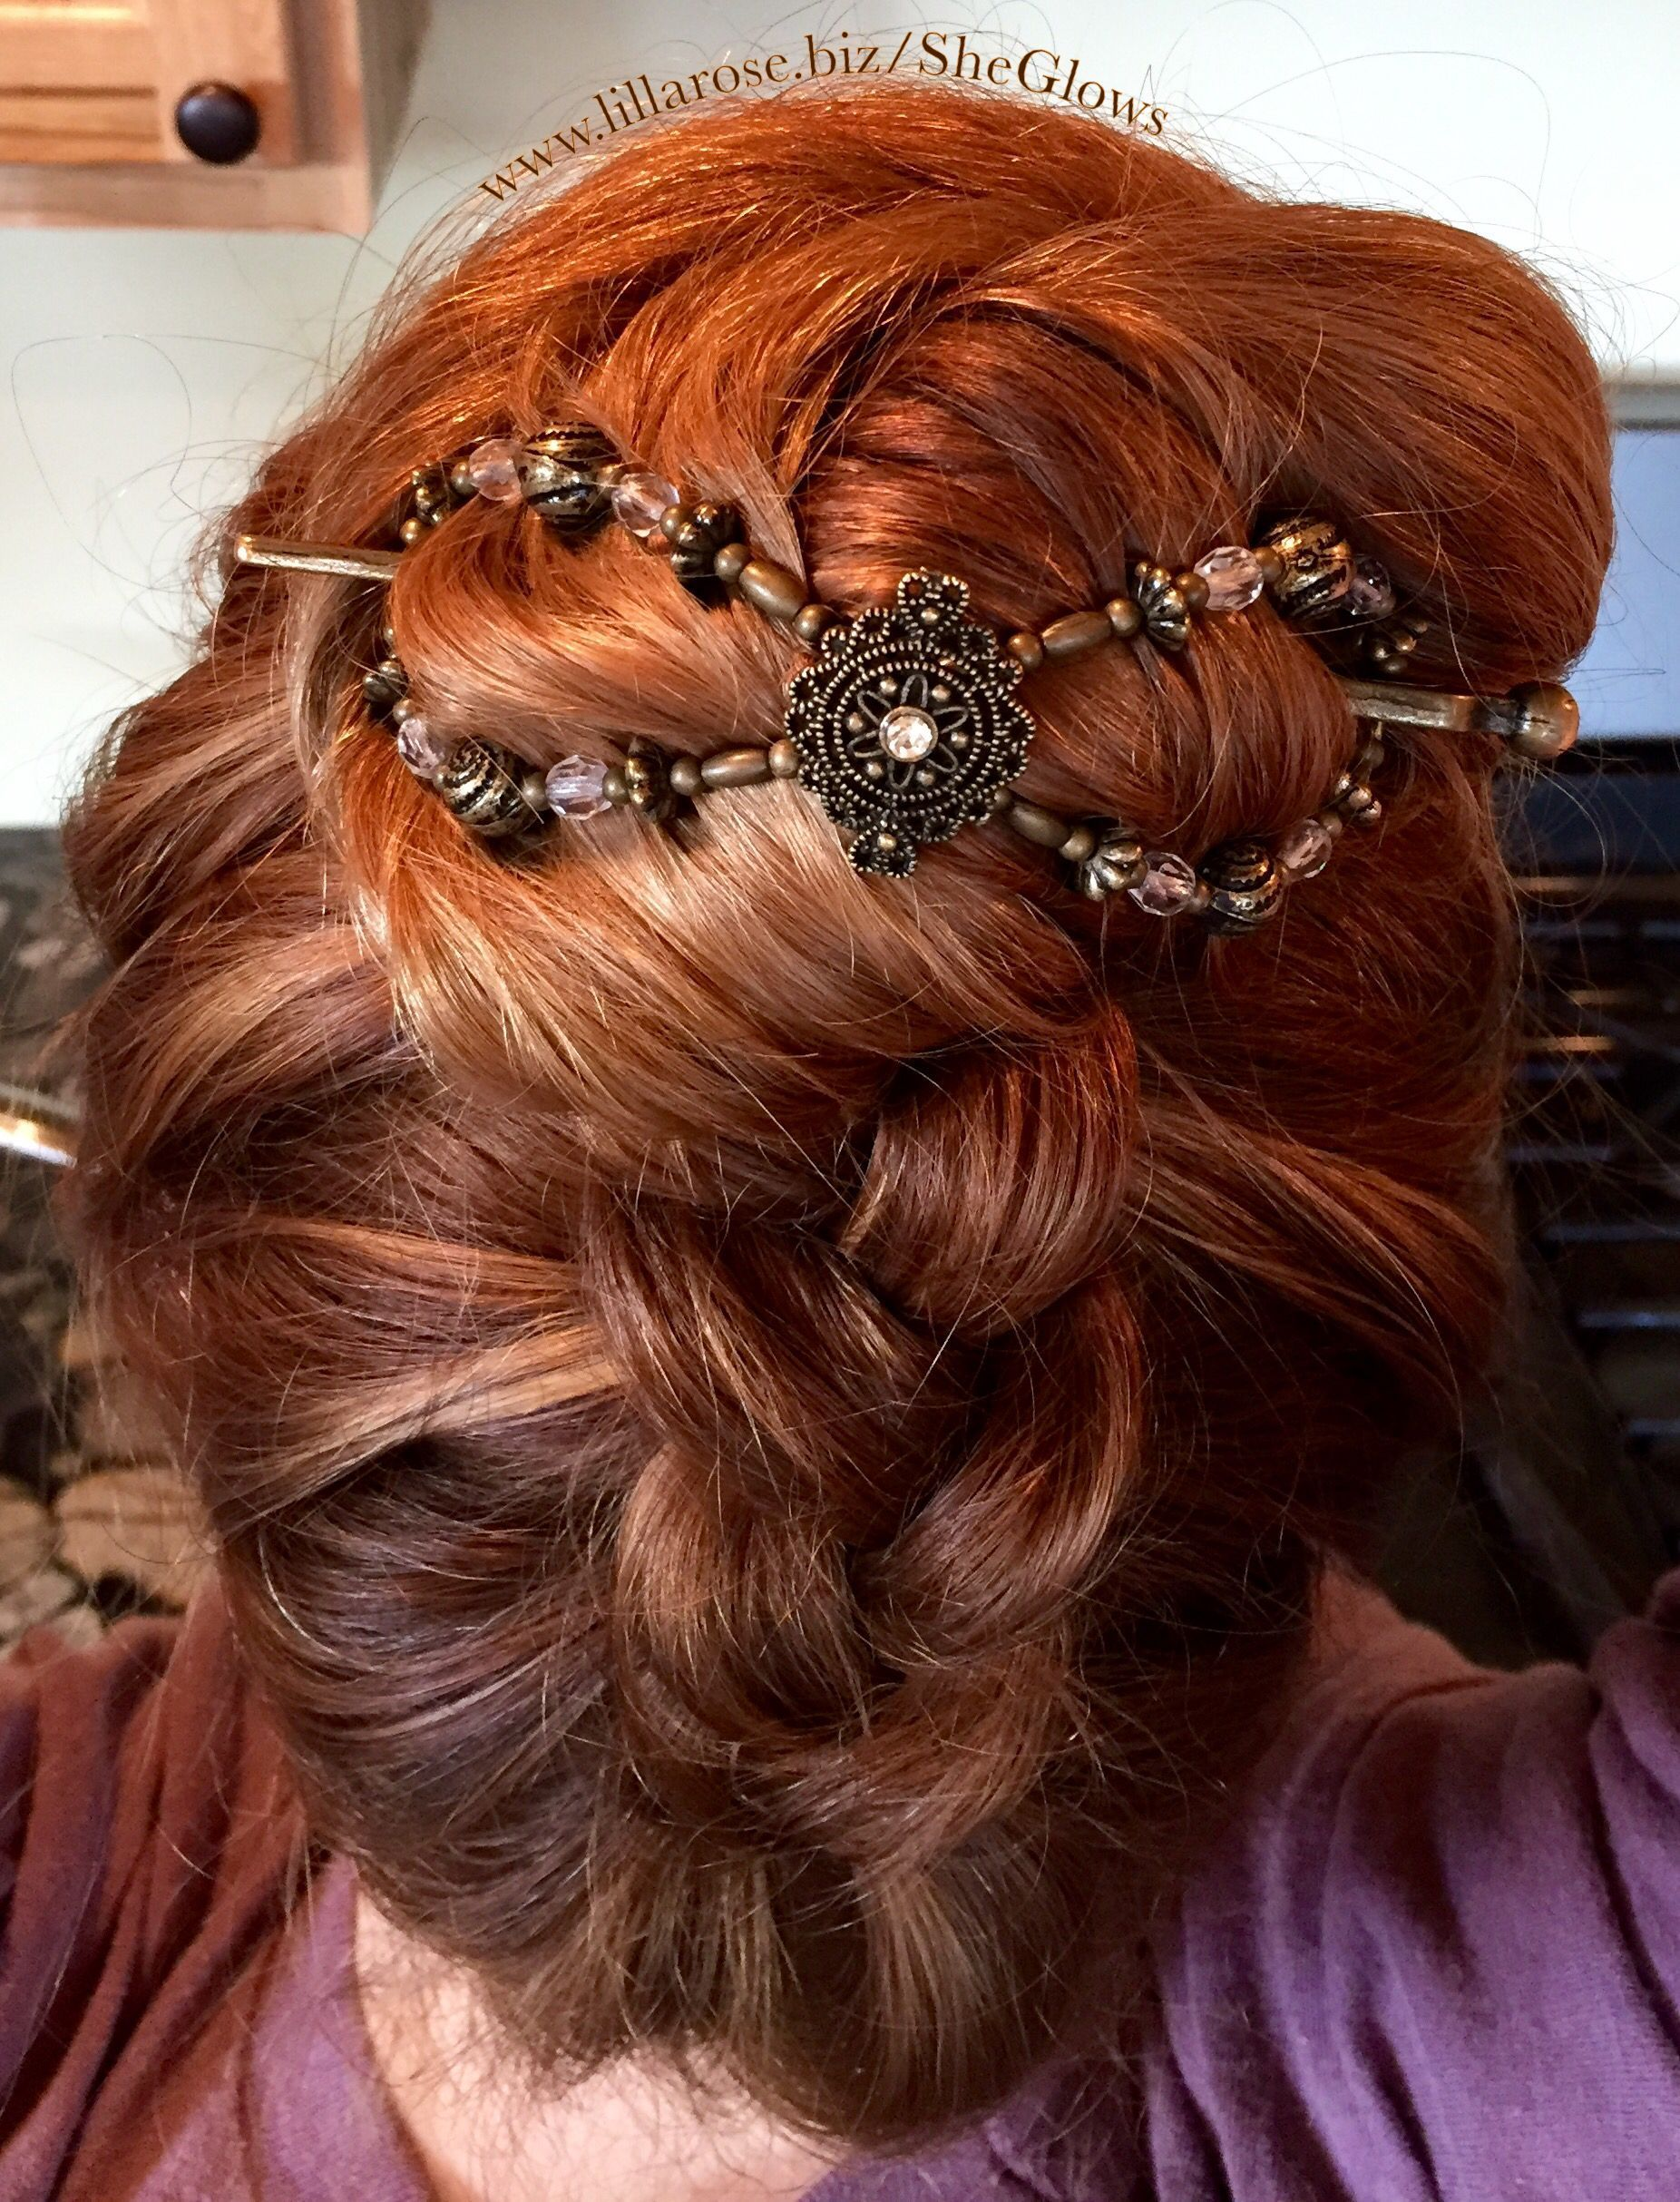 dress - Braided marvelous hairstyles video